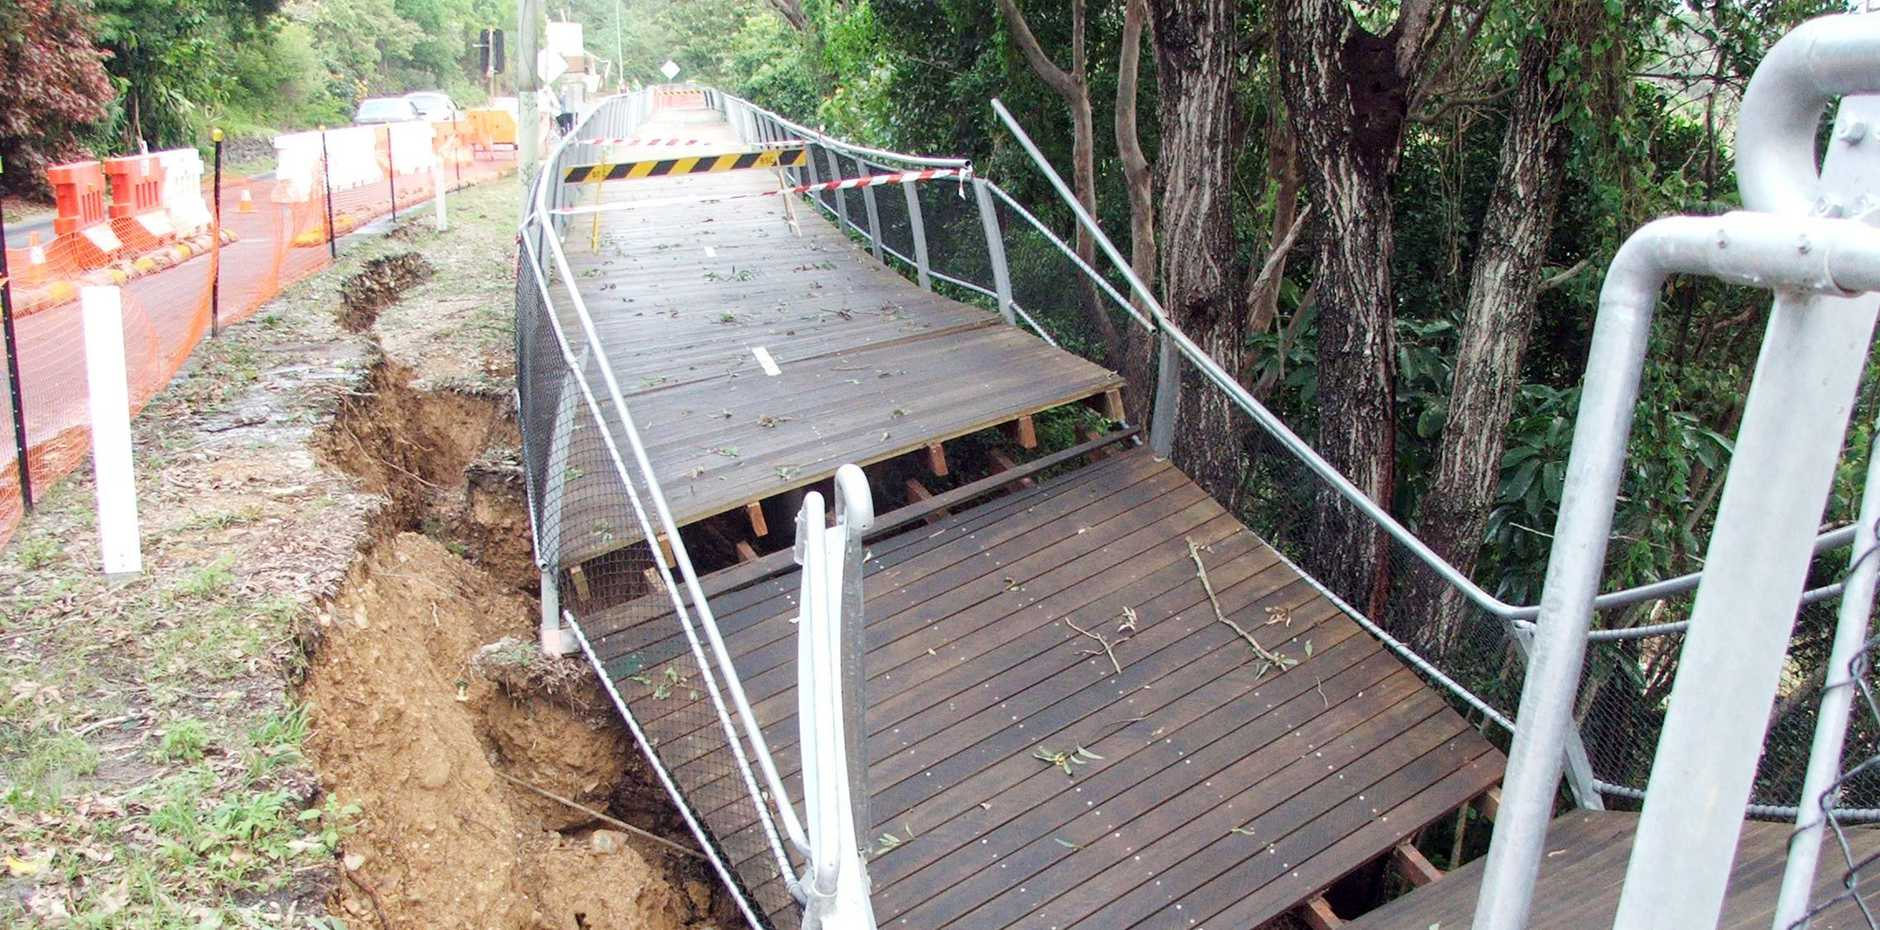 The scene five years ago. The collapsed section of the Lighthouse Road walkway.